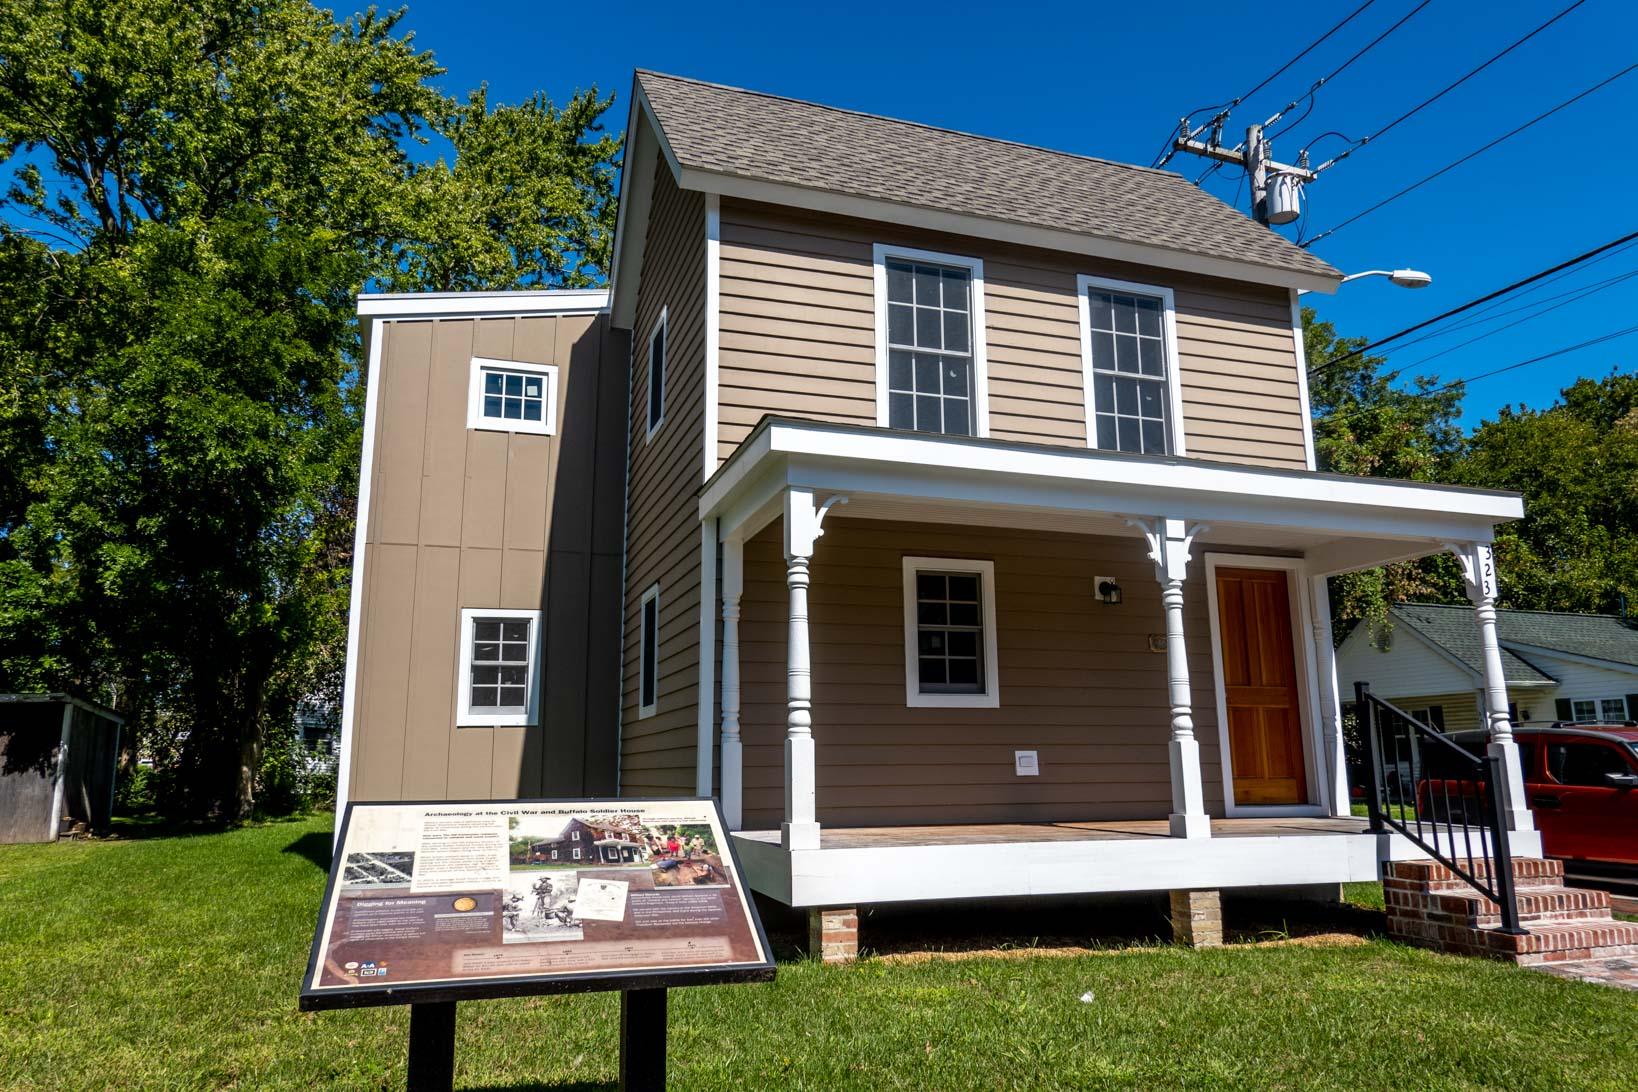 Brown house with information panel in front